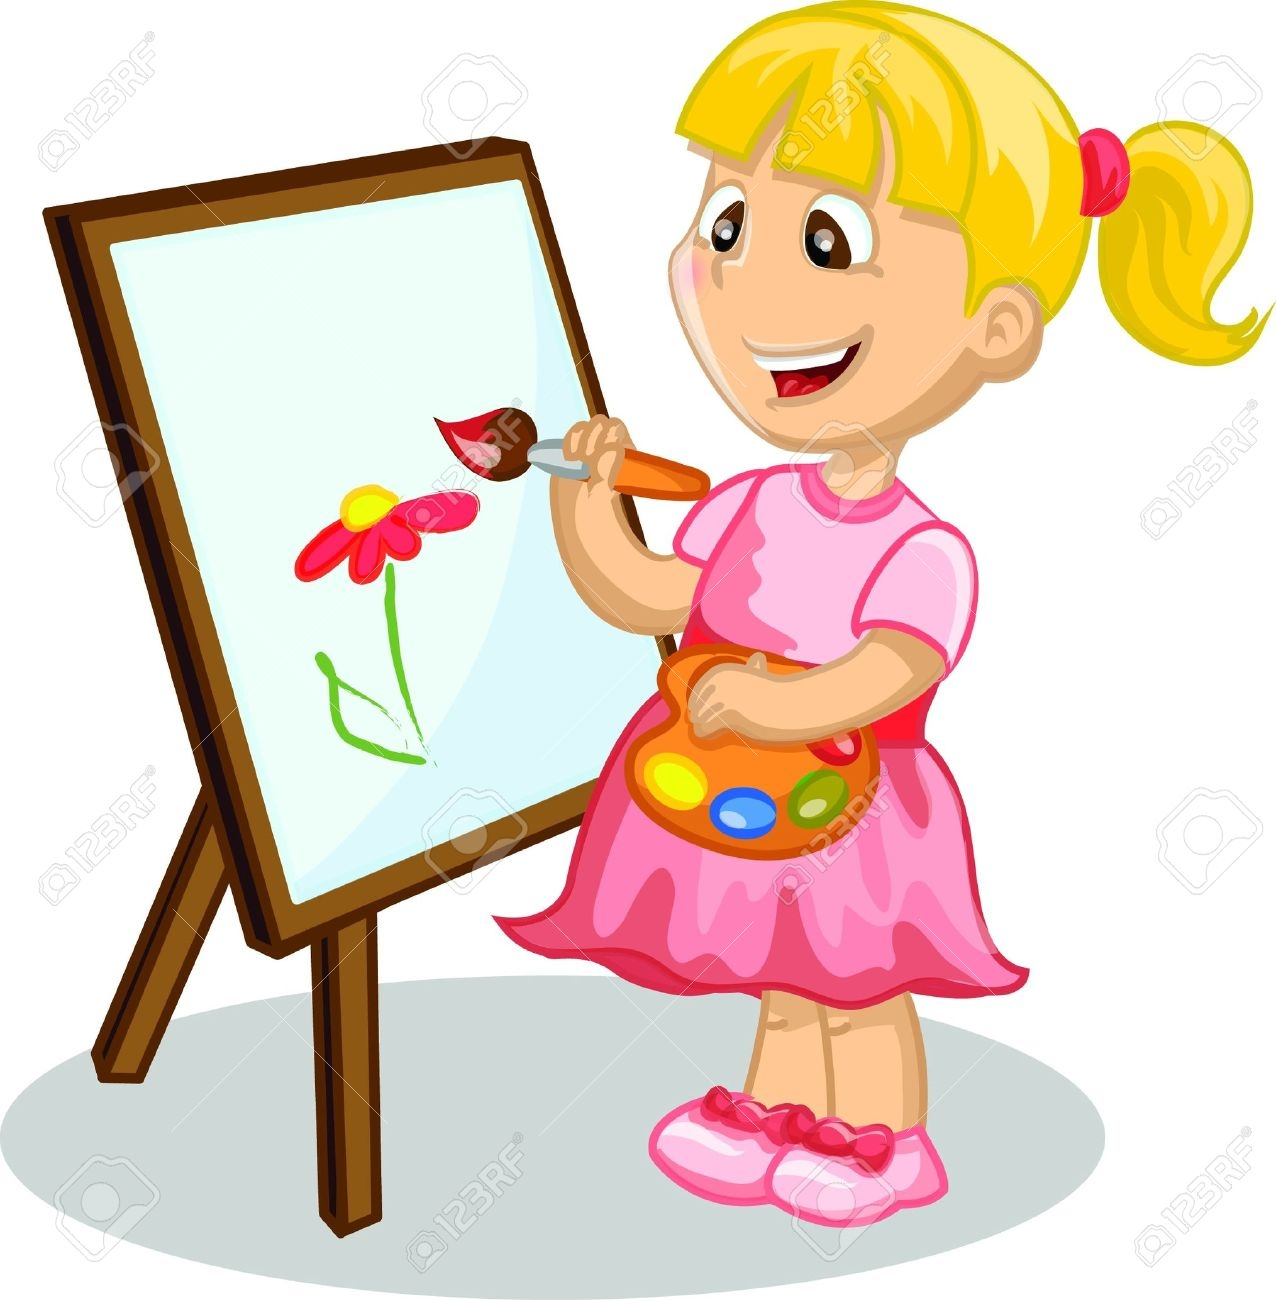 Girl drawing clipart